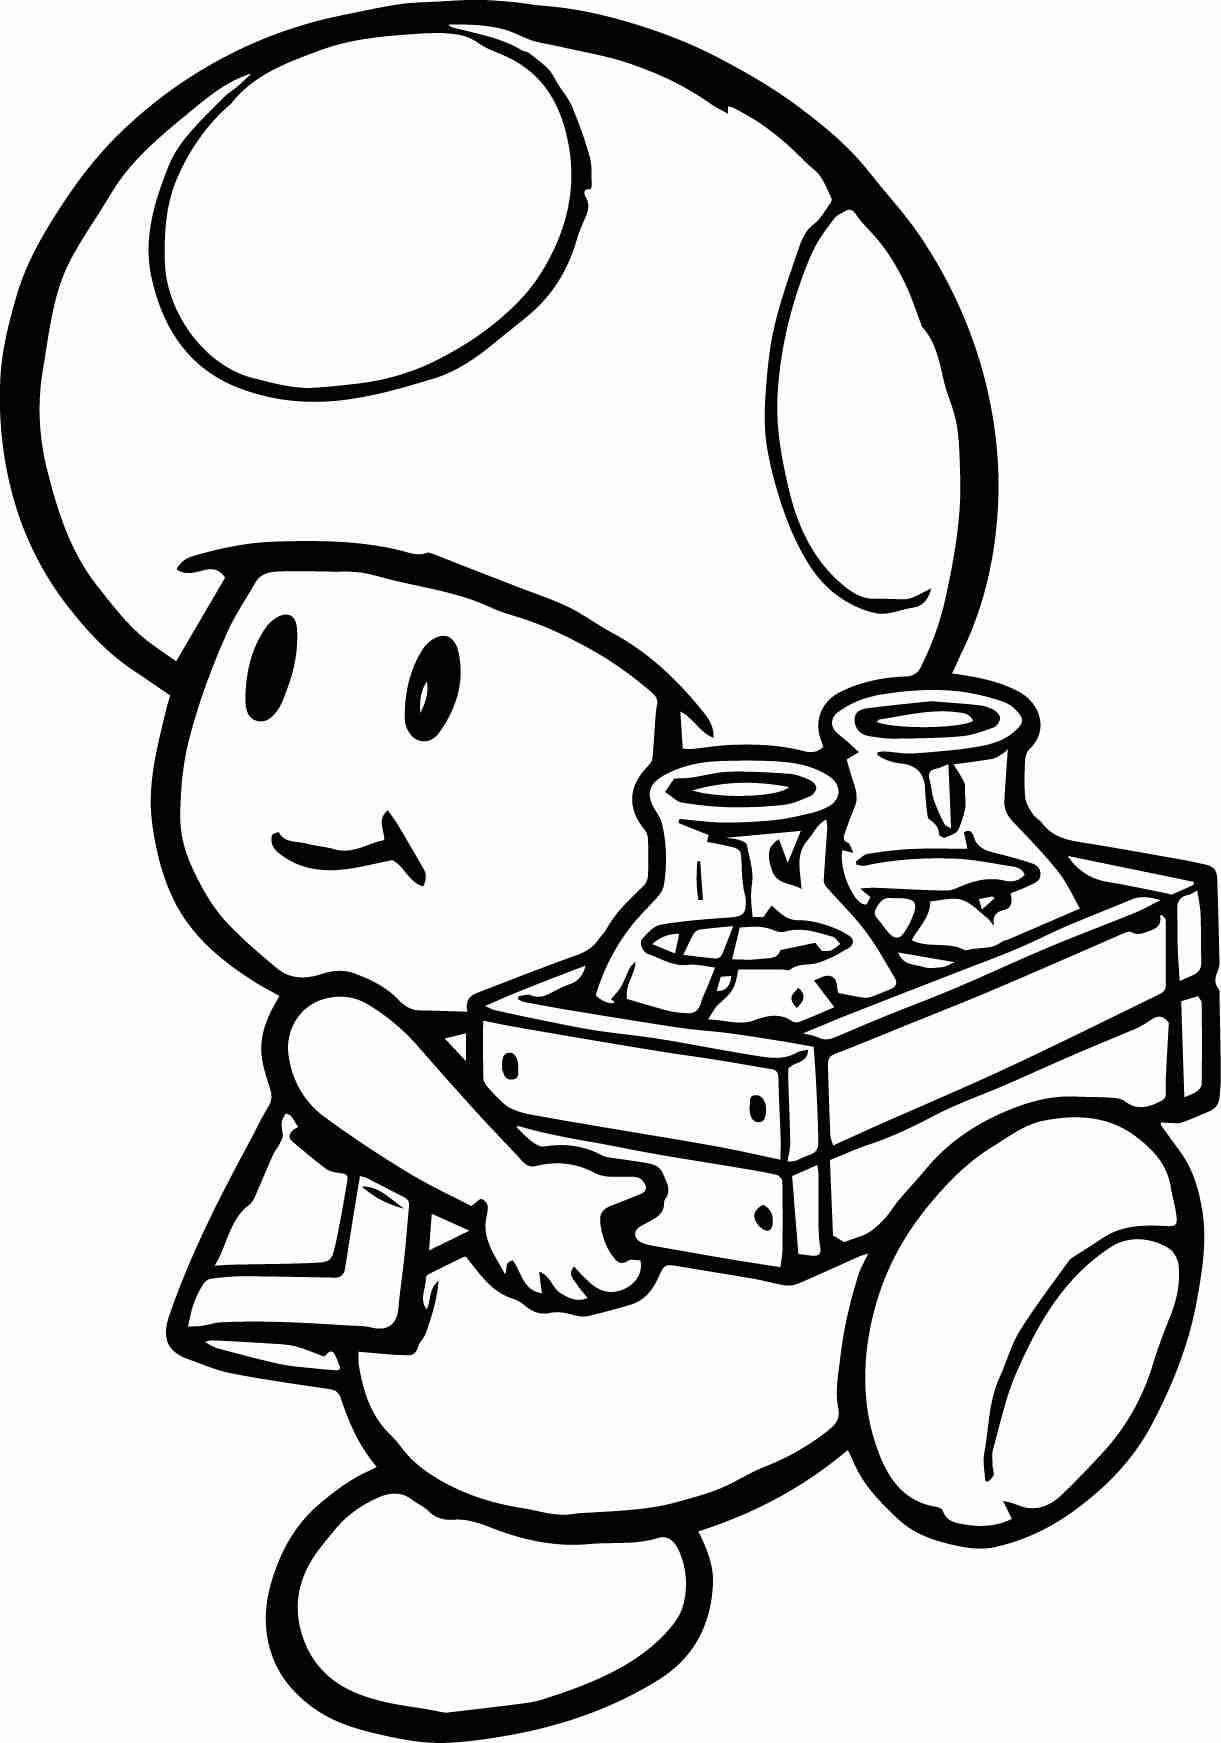 Nintendo Characters Coloring Pages at GetColorings.com ...